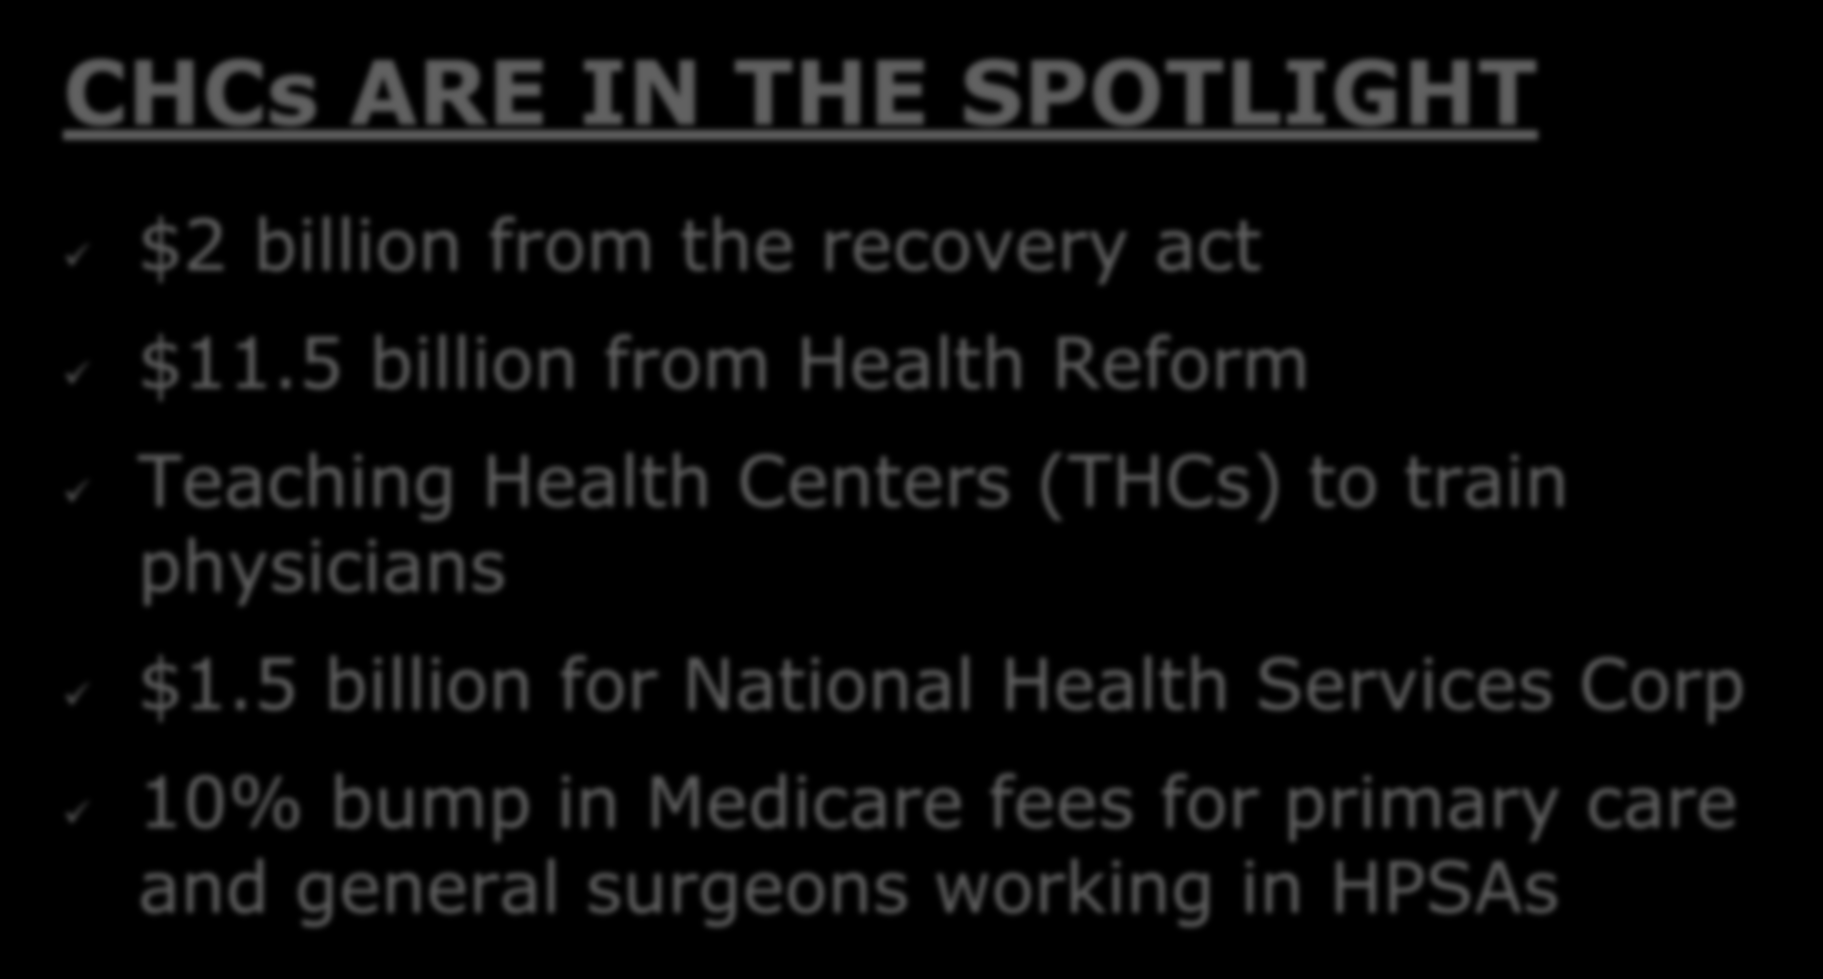 NOW, THE GOOD NEWS CHCs ARE IN THE SPOTLIGHT $2 billion from the recovery act $11.